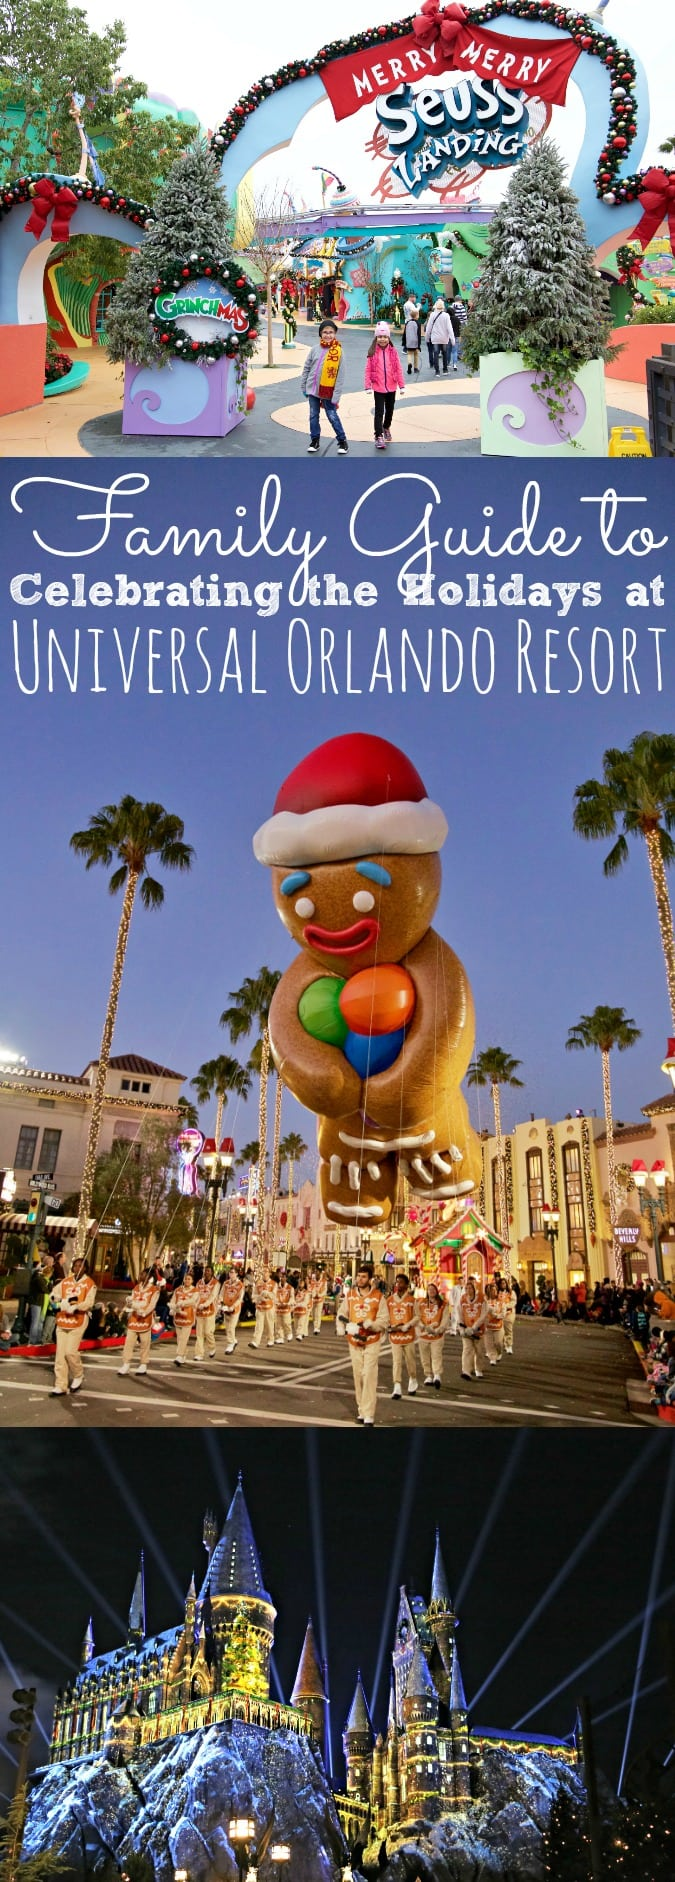 Family Guide To Celebrating the Holidays at Universal Orlando Resort - simplytodaylife.com